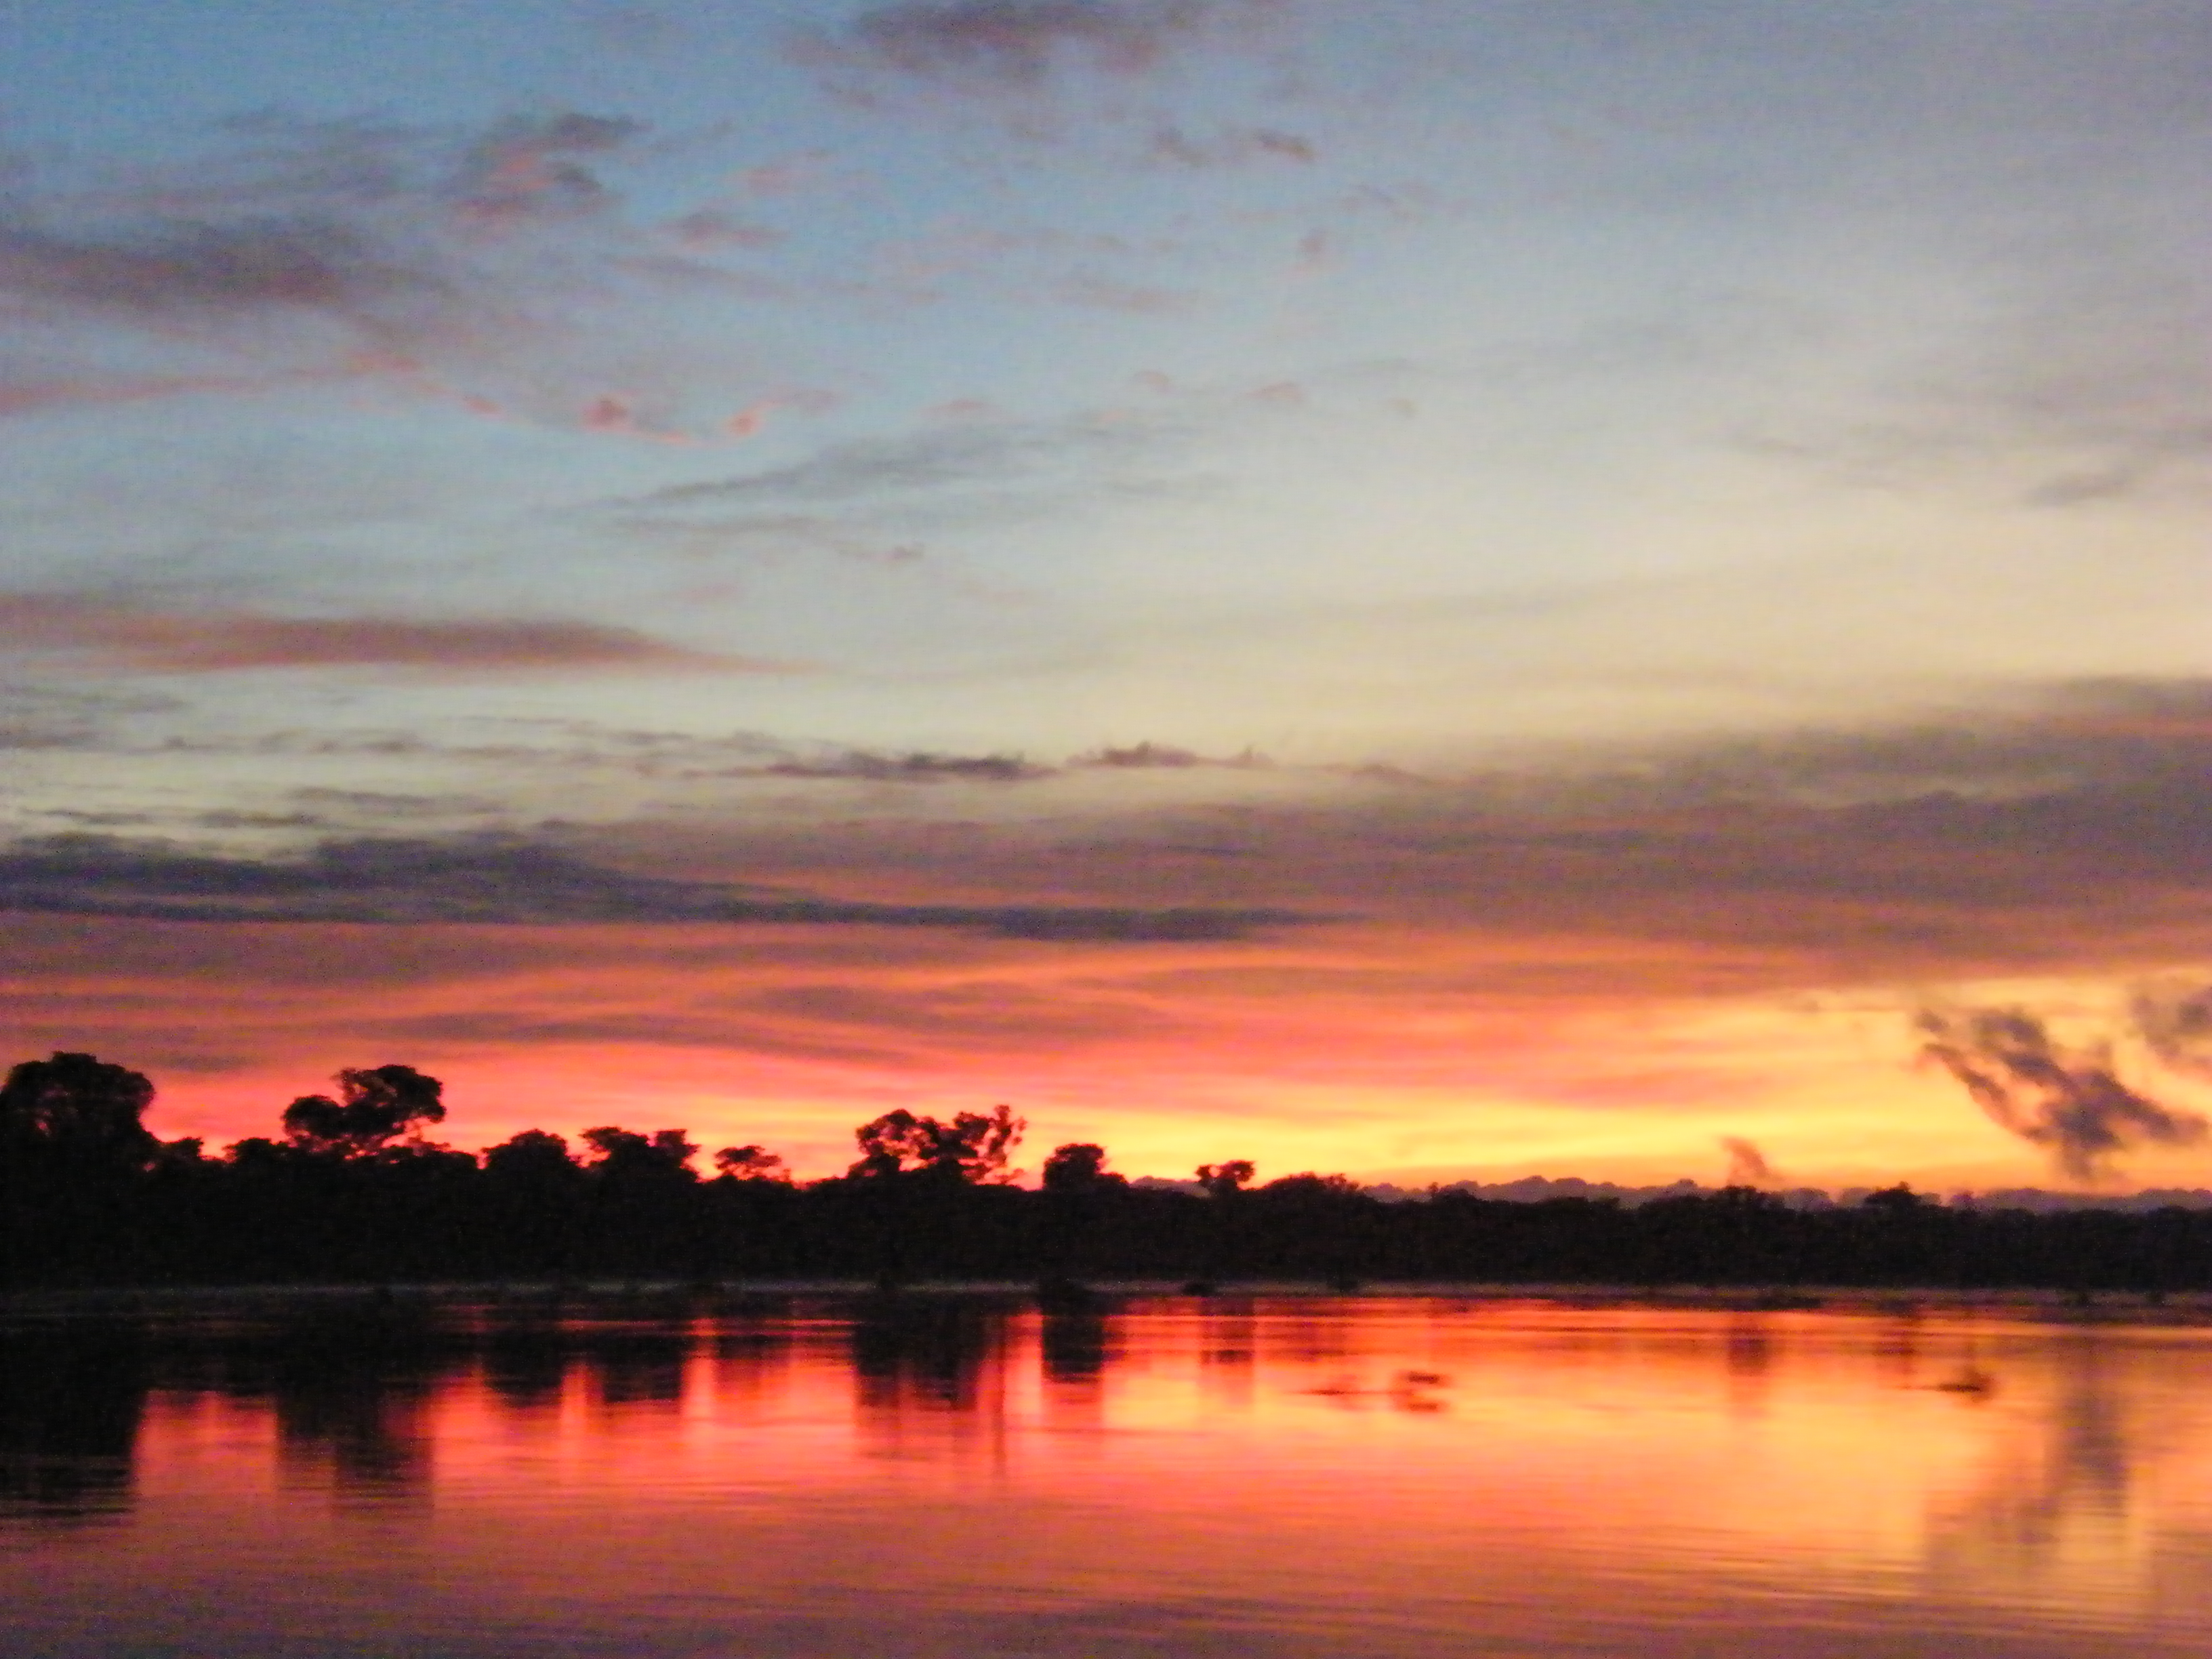 Sunrise on the Paraguay River